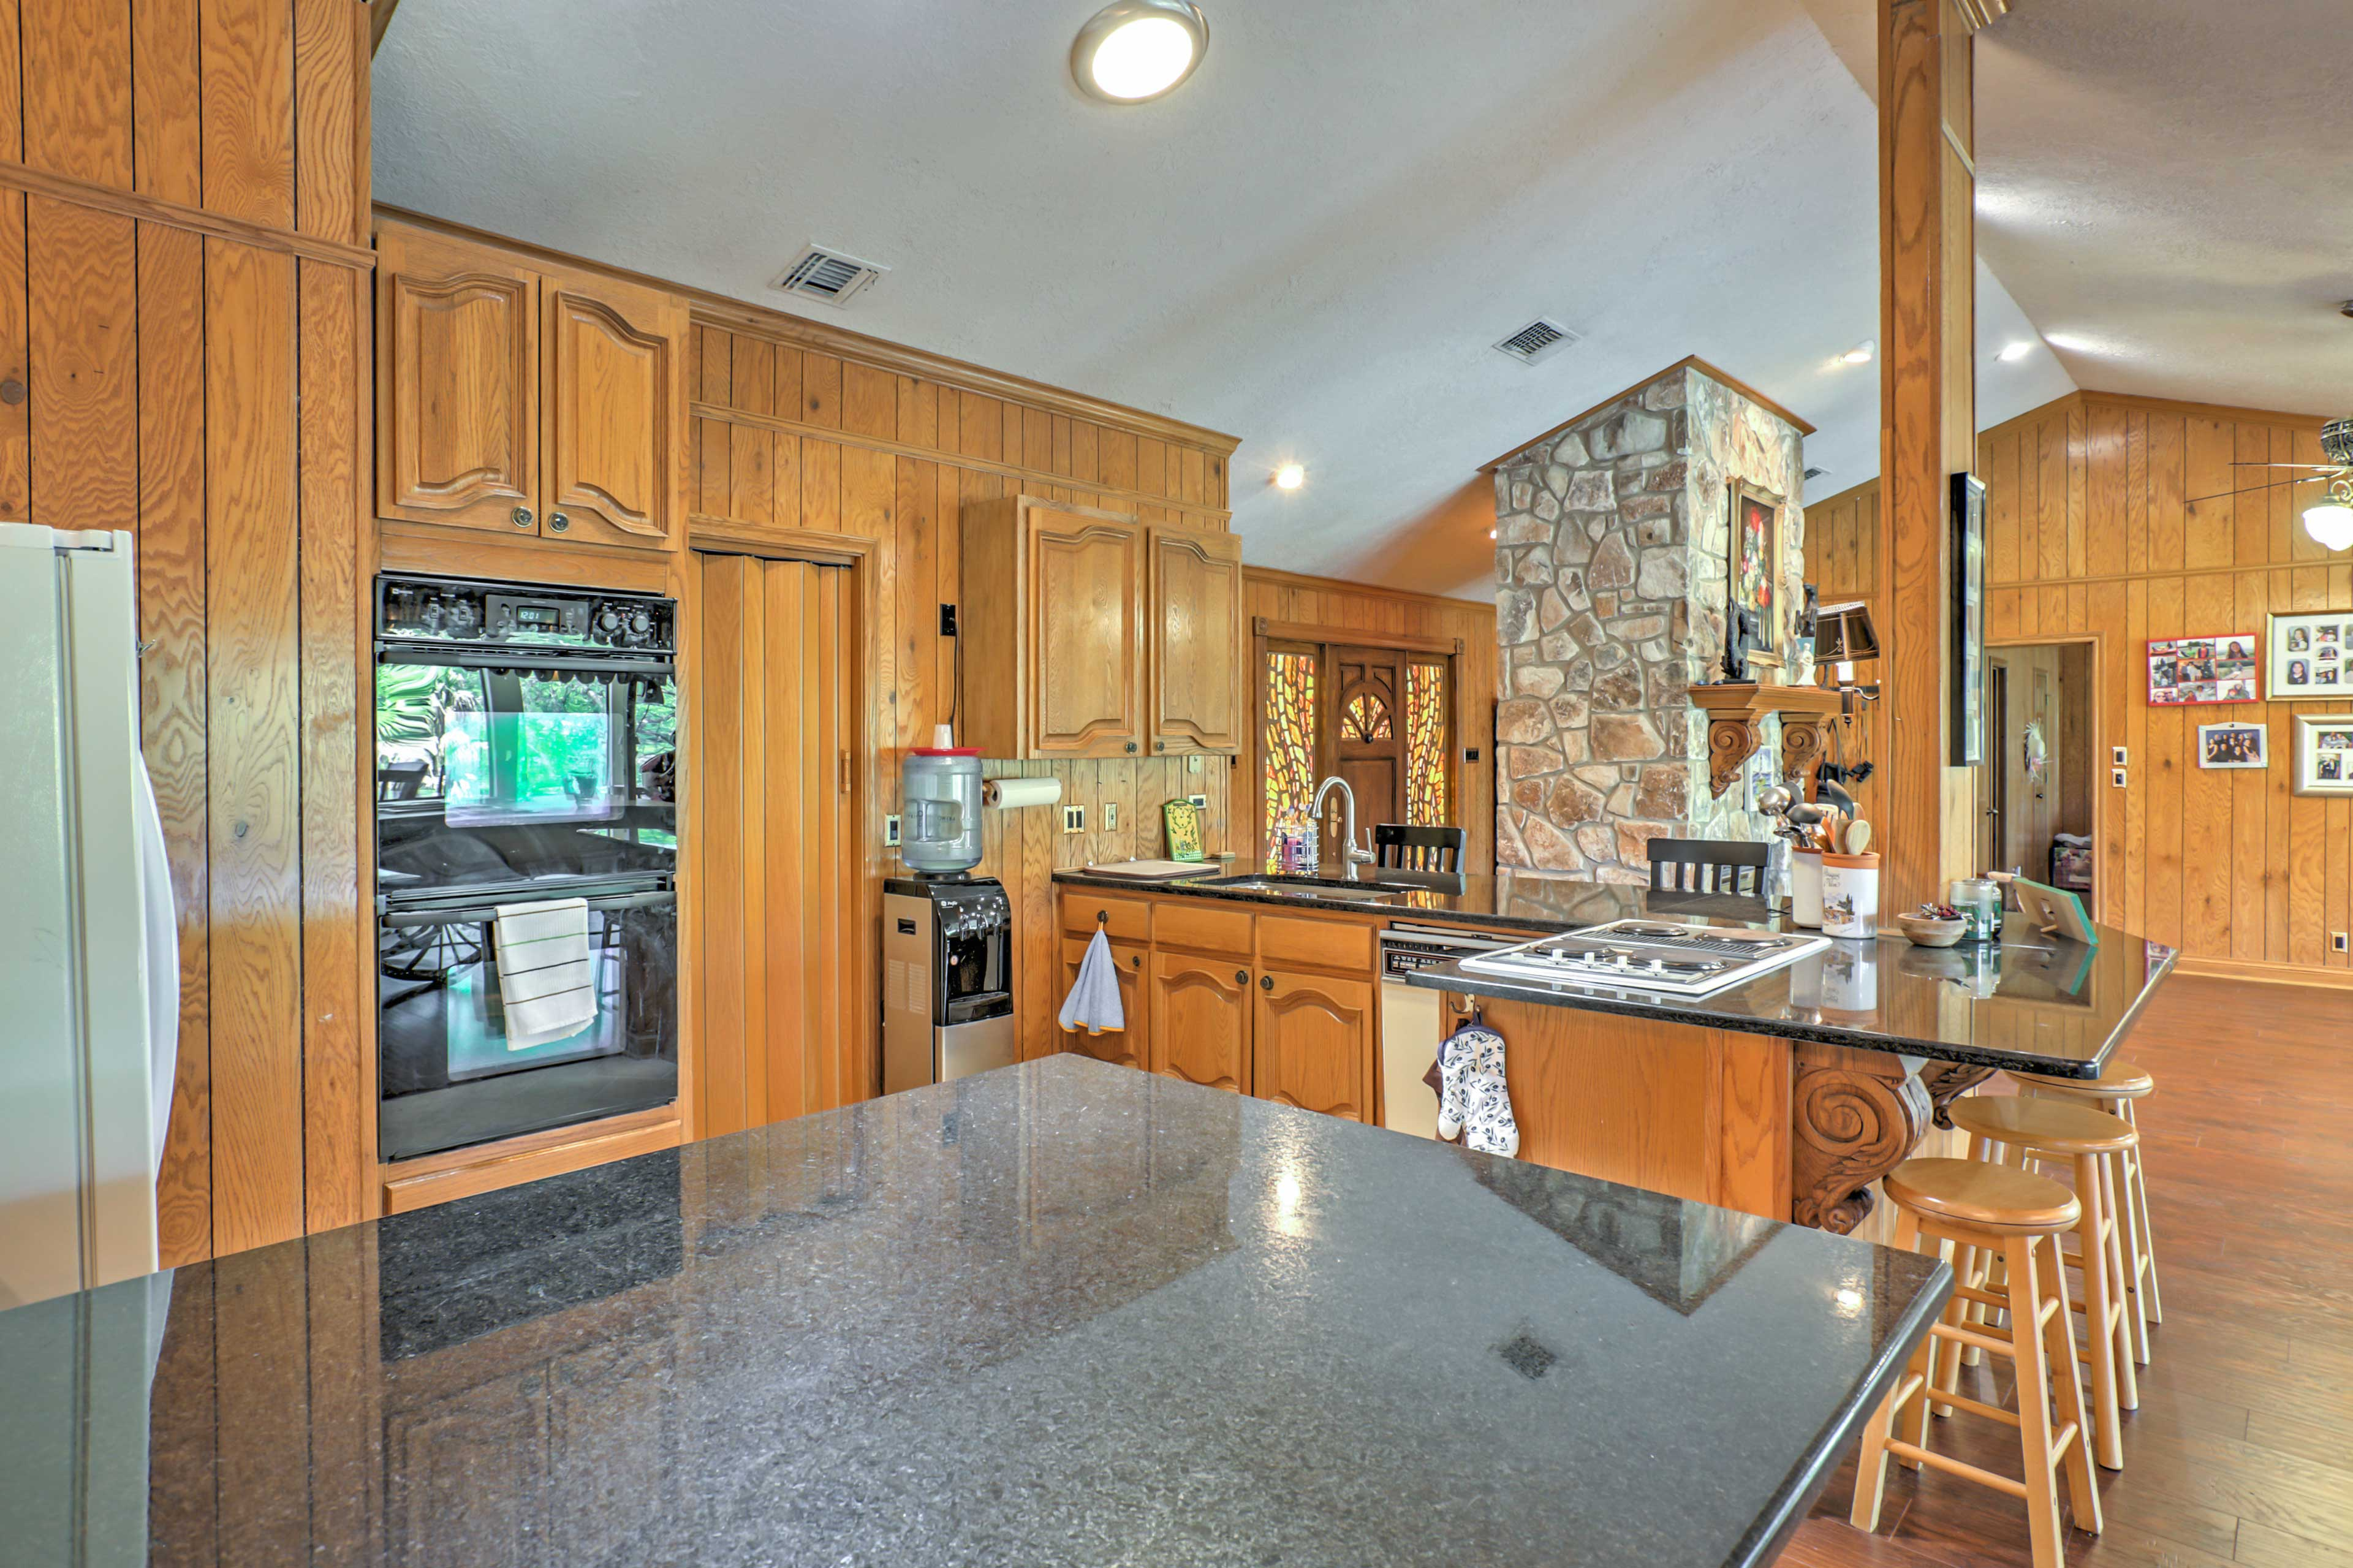 There's ample counter space in the kitchen!